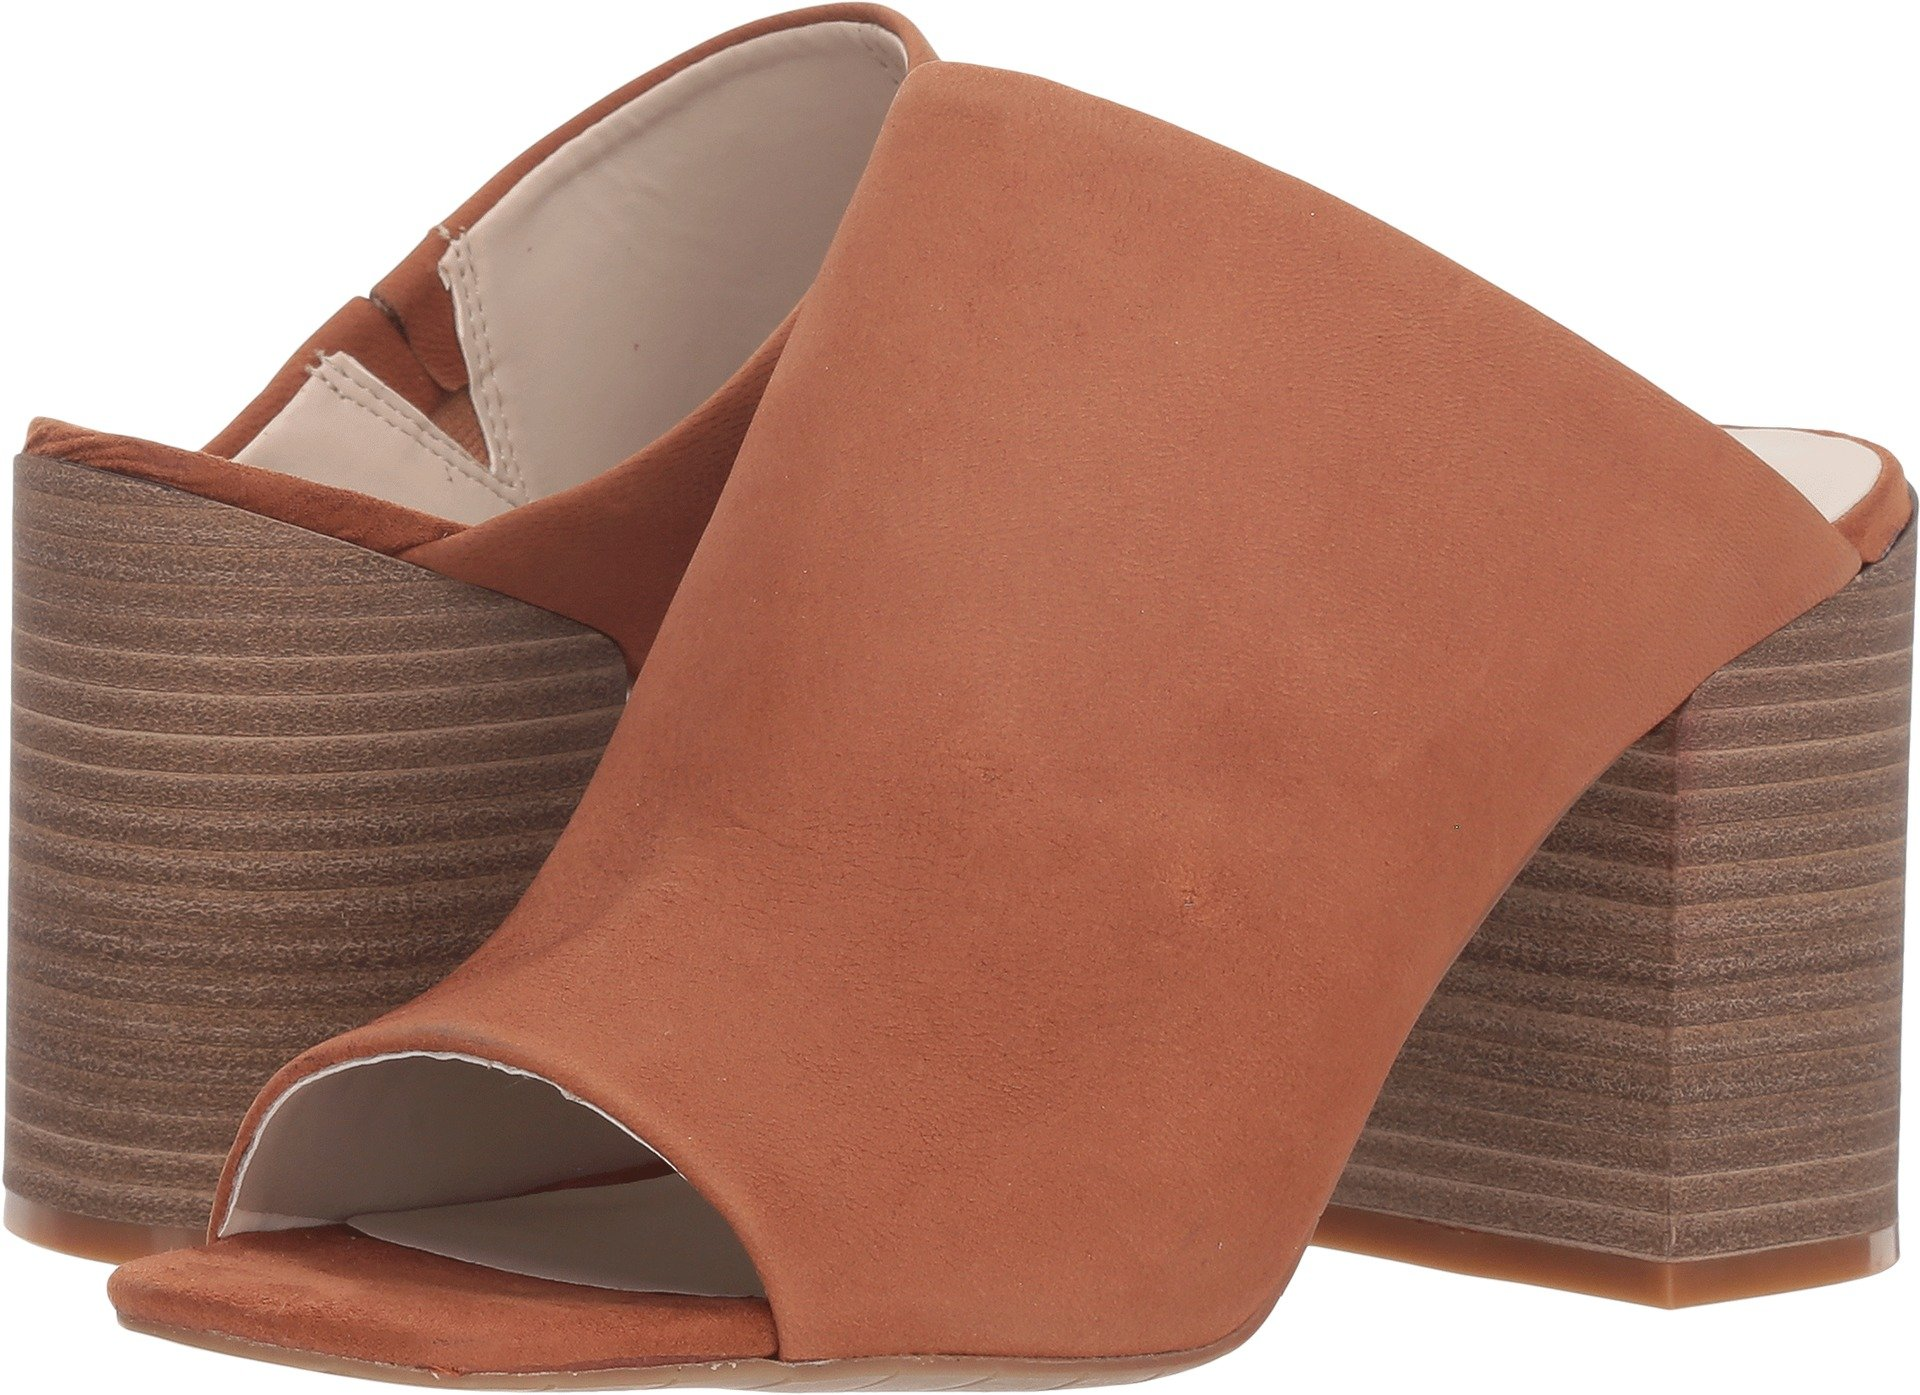 Kenneth Cole REACTION Women's Top Notch Cognac 7.5 M US by Kenneth Cole REACTION (Image #1)